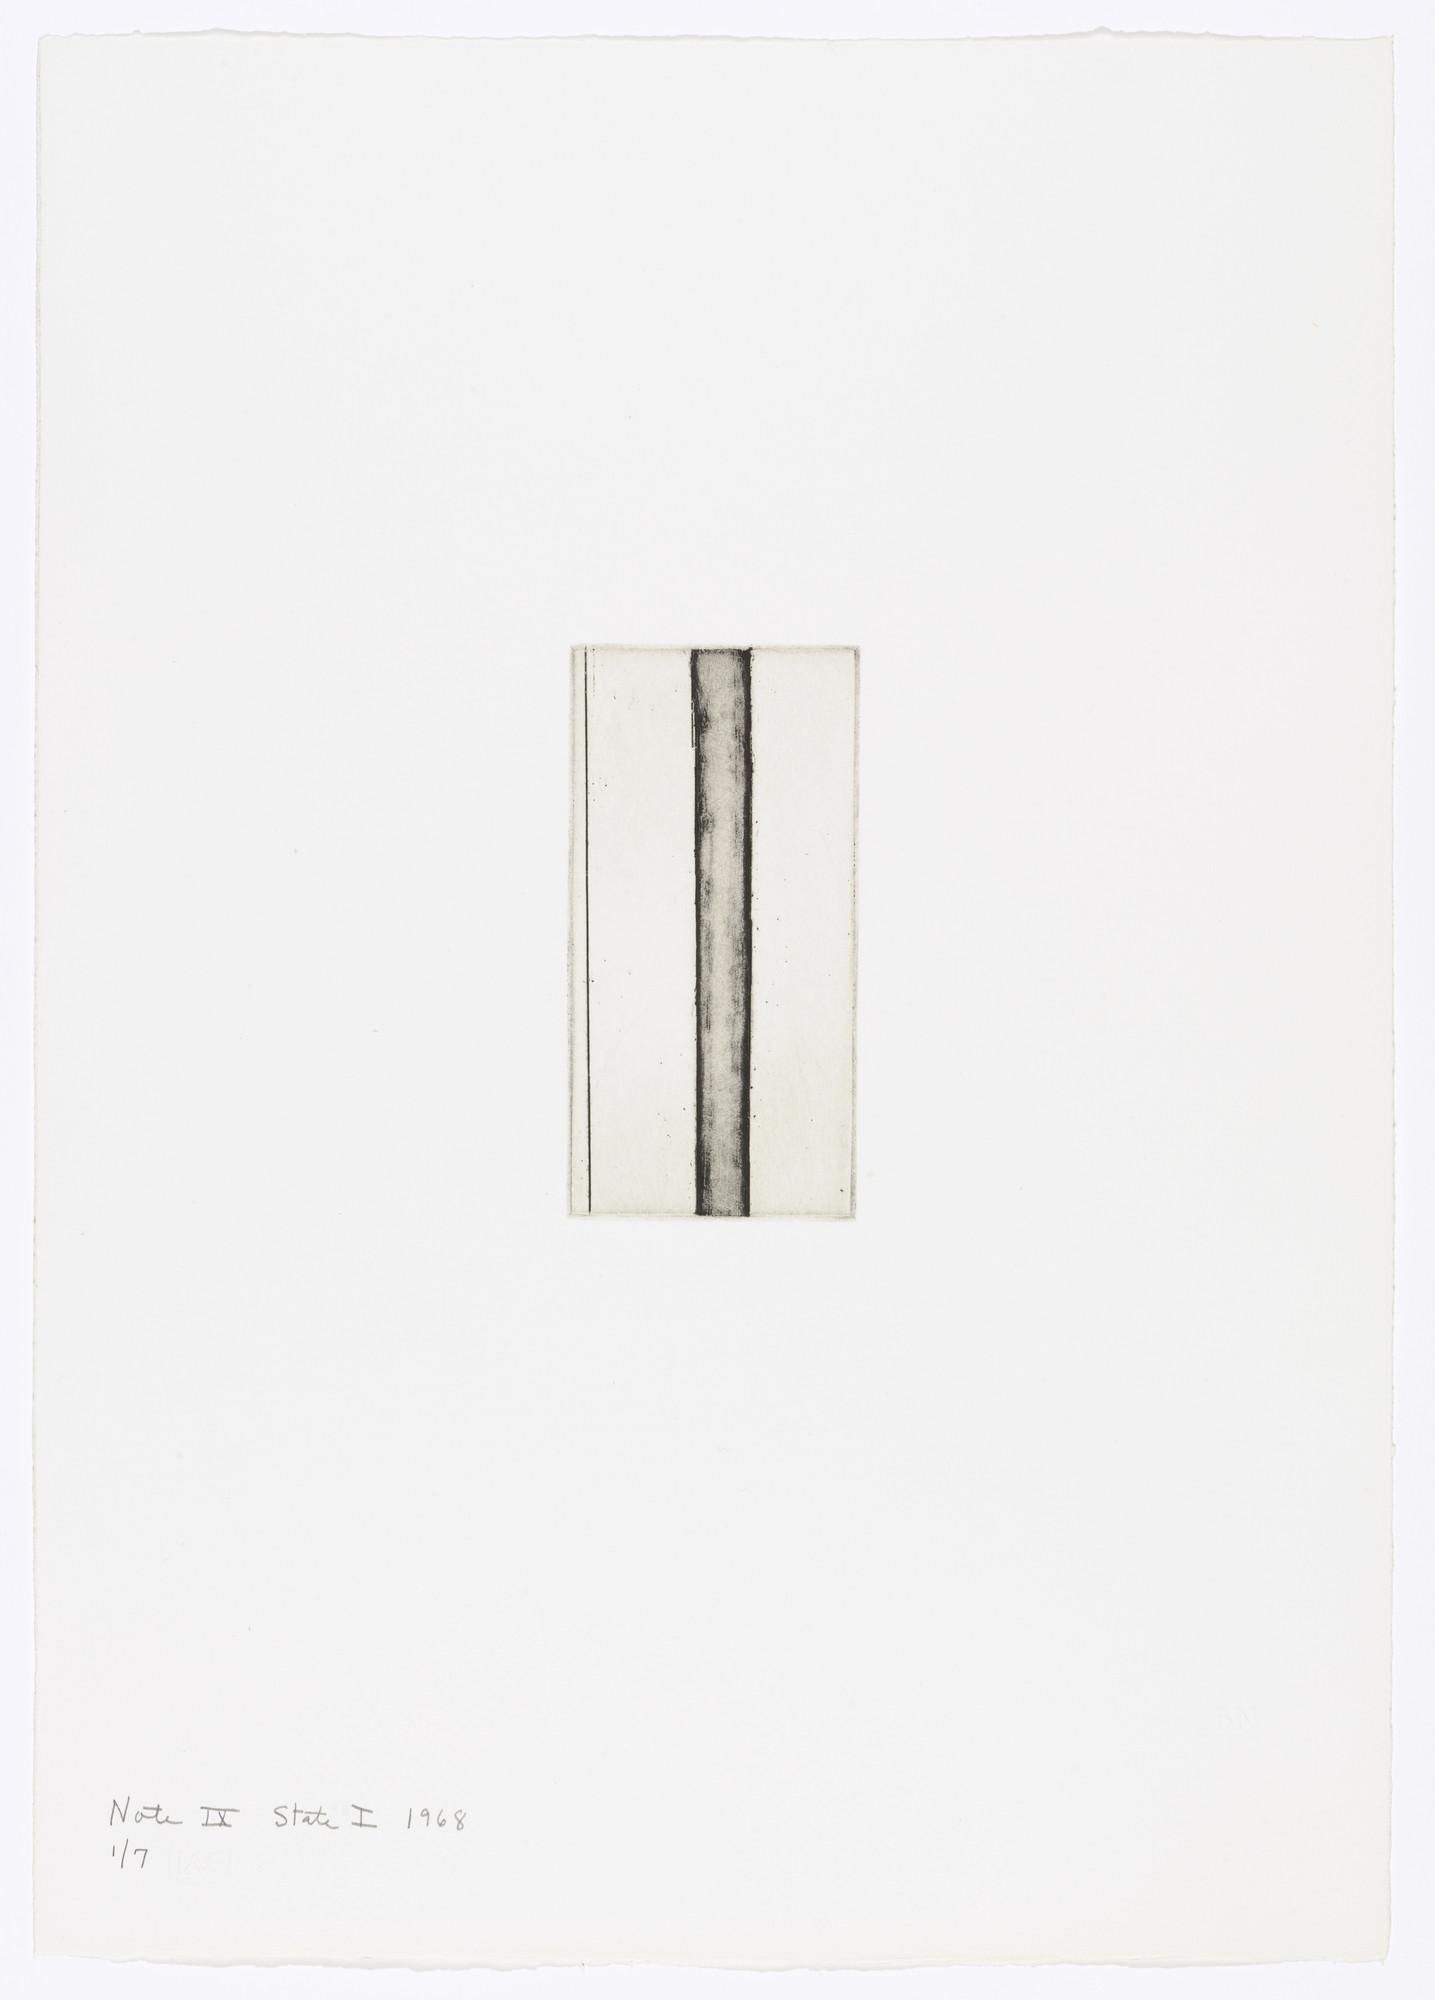 Barnett Newman. Note IX (State I) from Notes. 1968